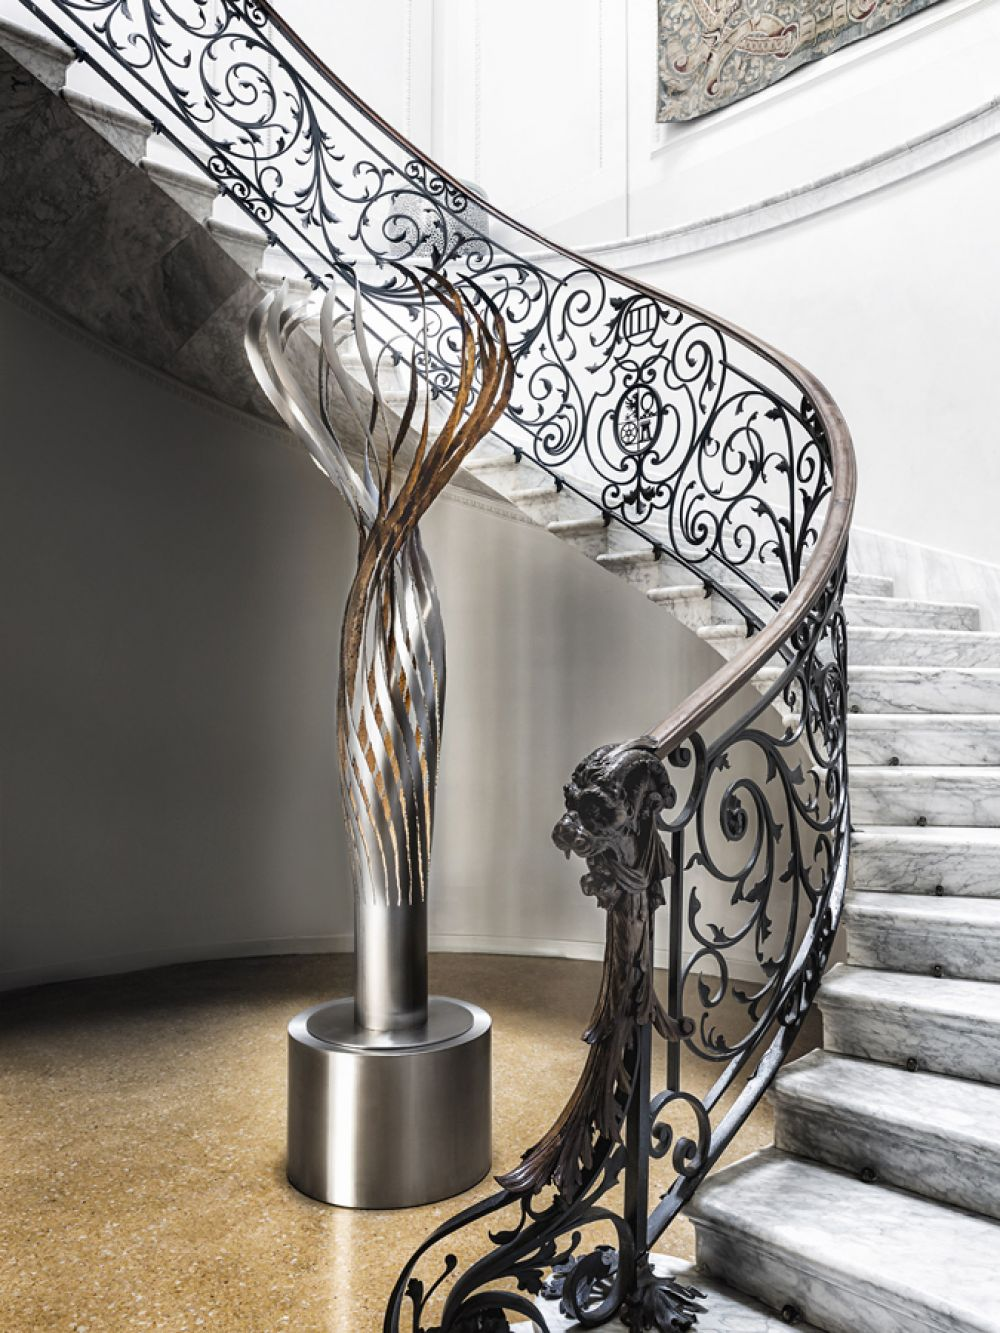 KOICEA Sculptural lighting at Villa D'Acquarone - Stainless steel